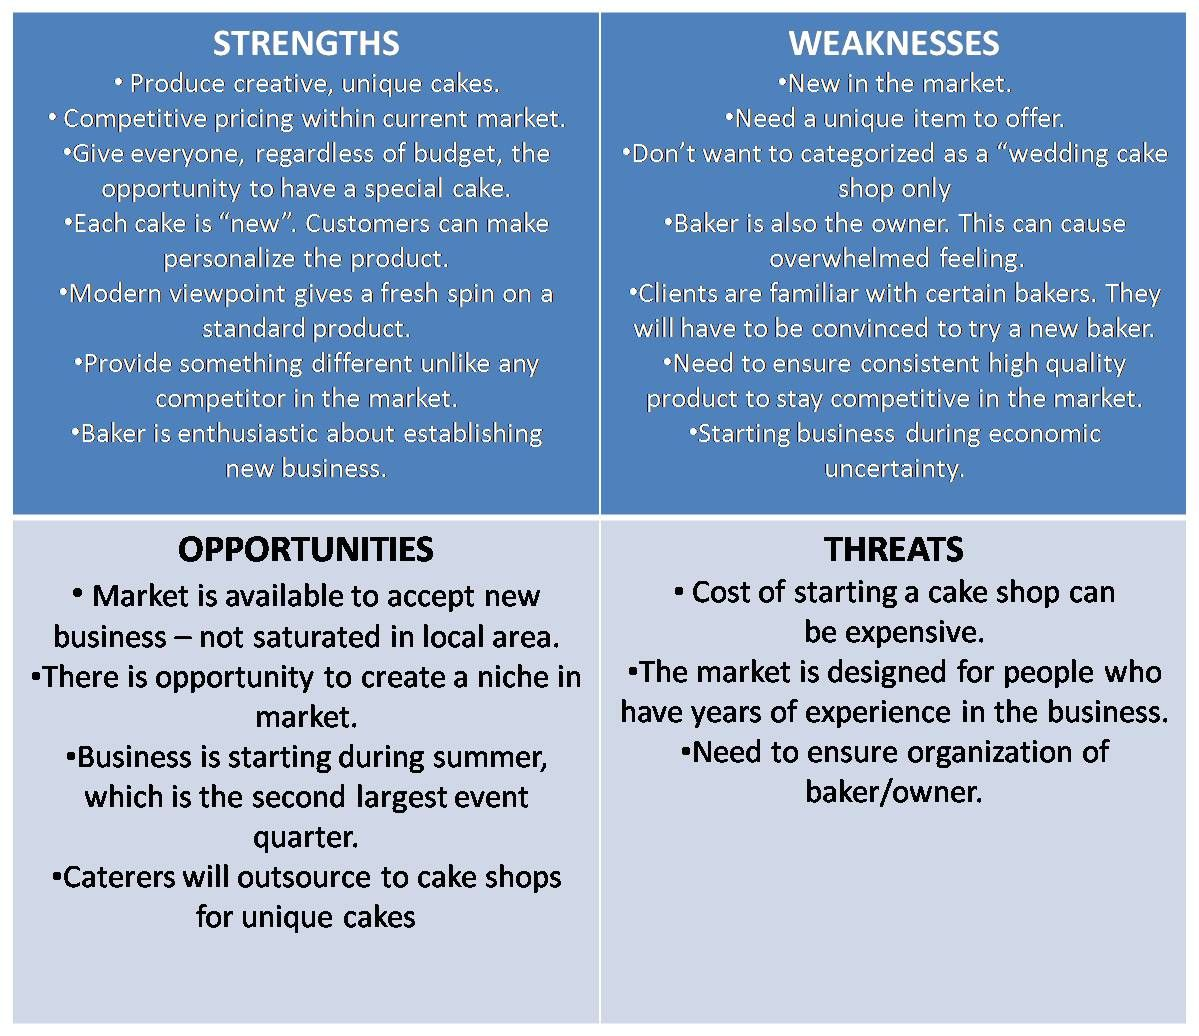 professional personal swot analysis examples marketing professional personal swot analysis examples